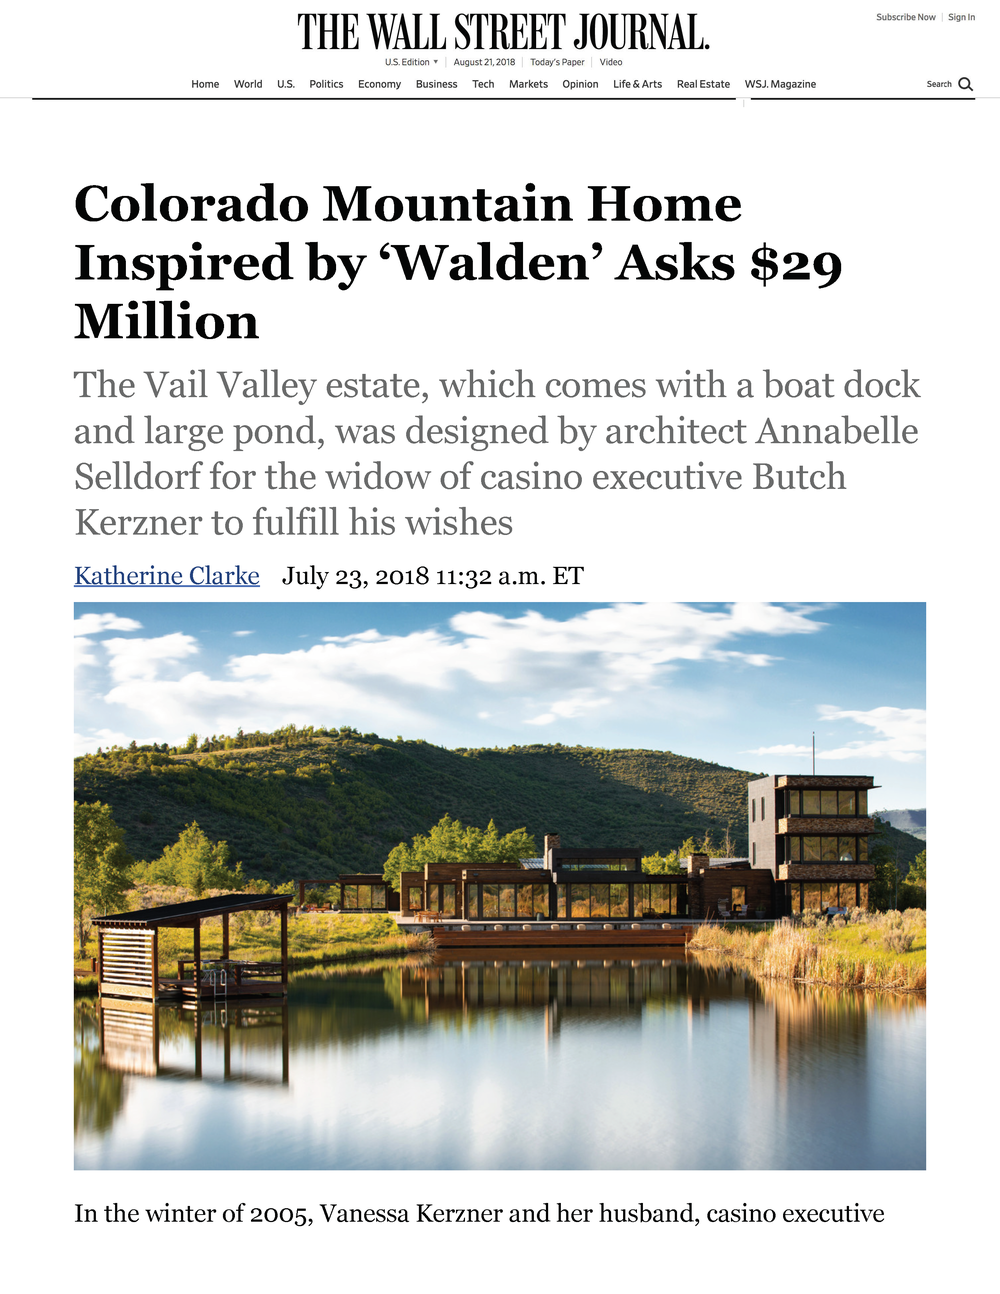 Colorado Mountain Home Inspired by 'Walden' Asks $29 Million - WSJ (1)_Page_1.png